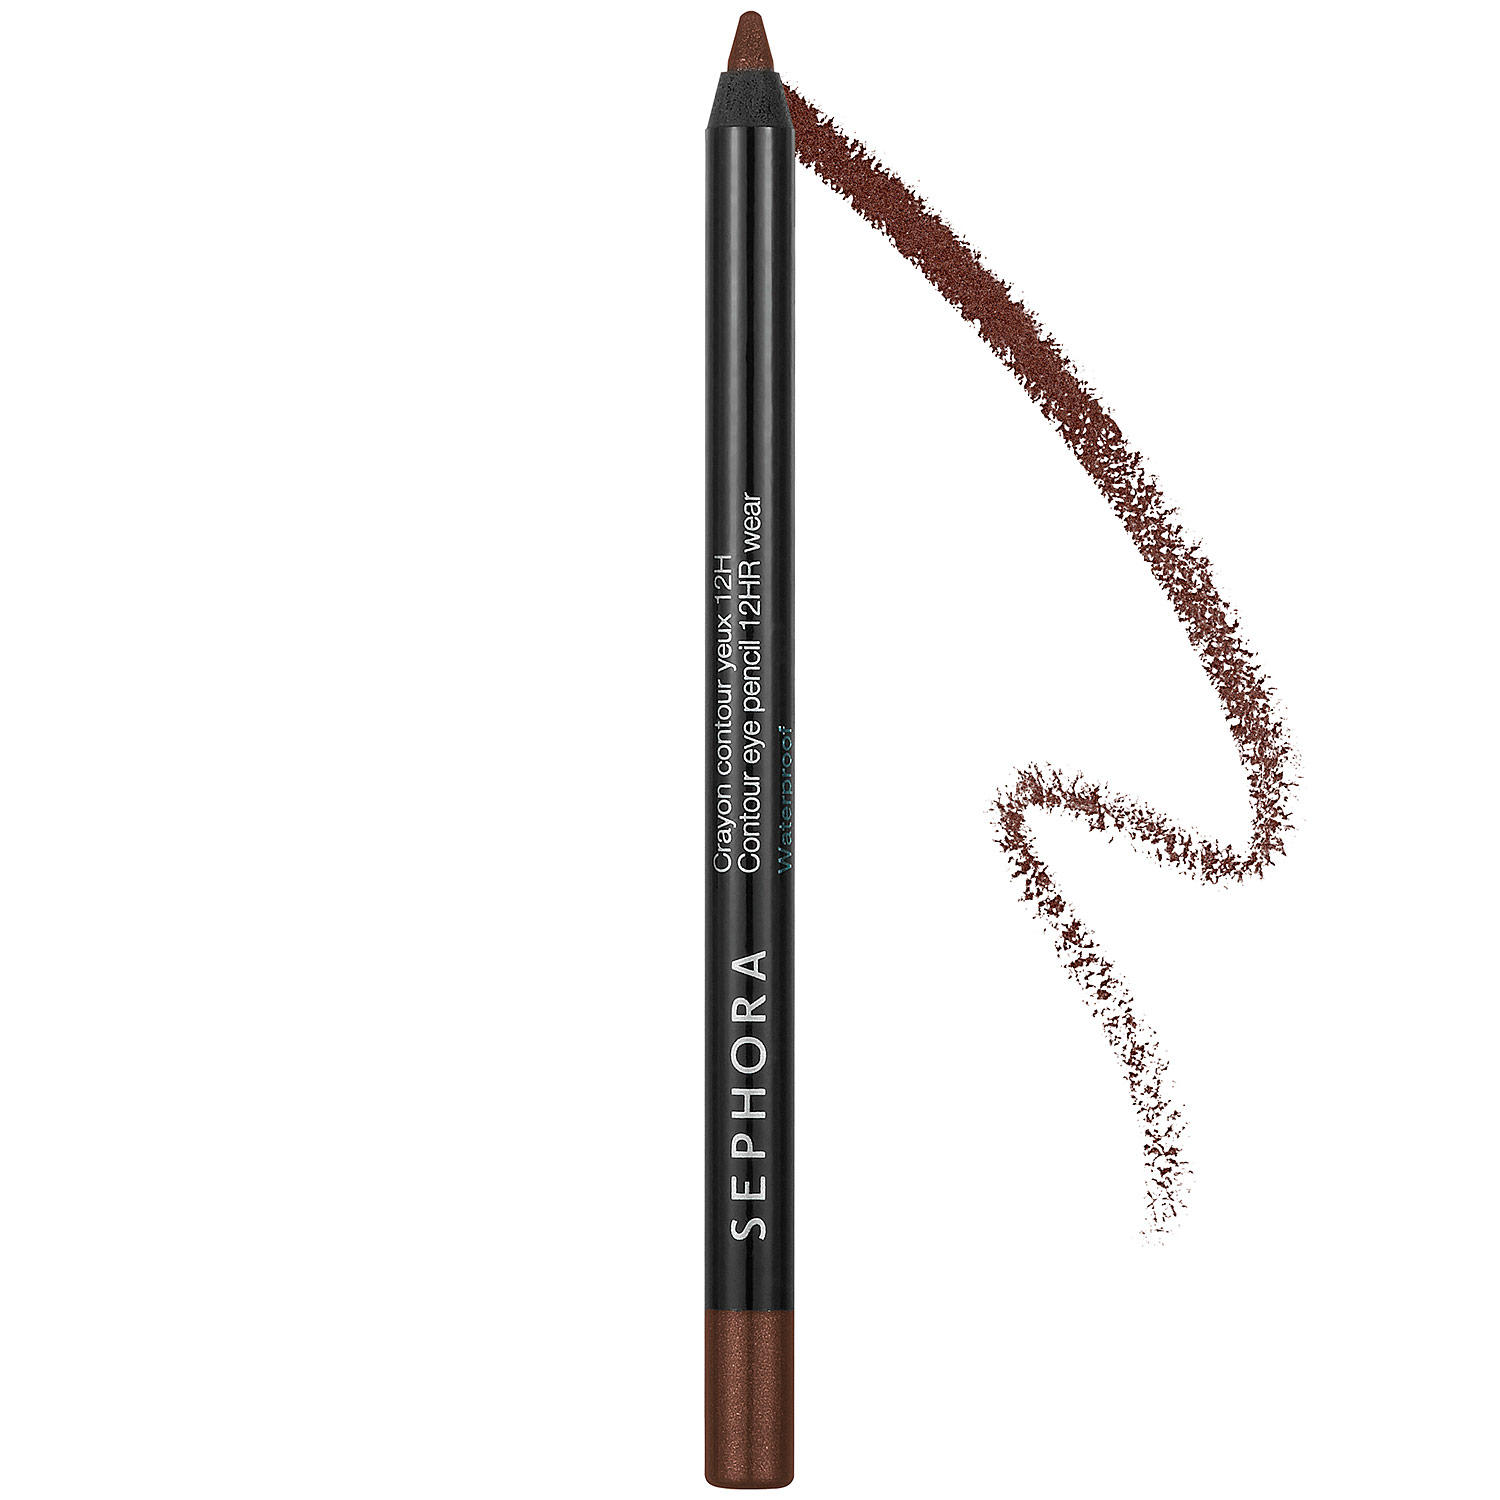 Sephora Contour Eye Pencil 12hr Wear Waterproof Cocoa 14